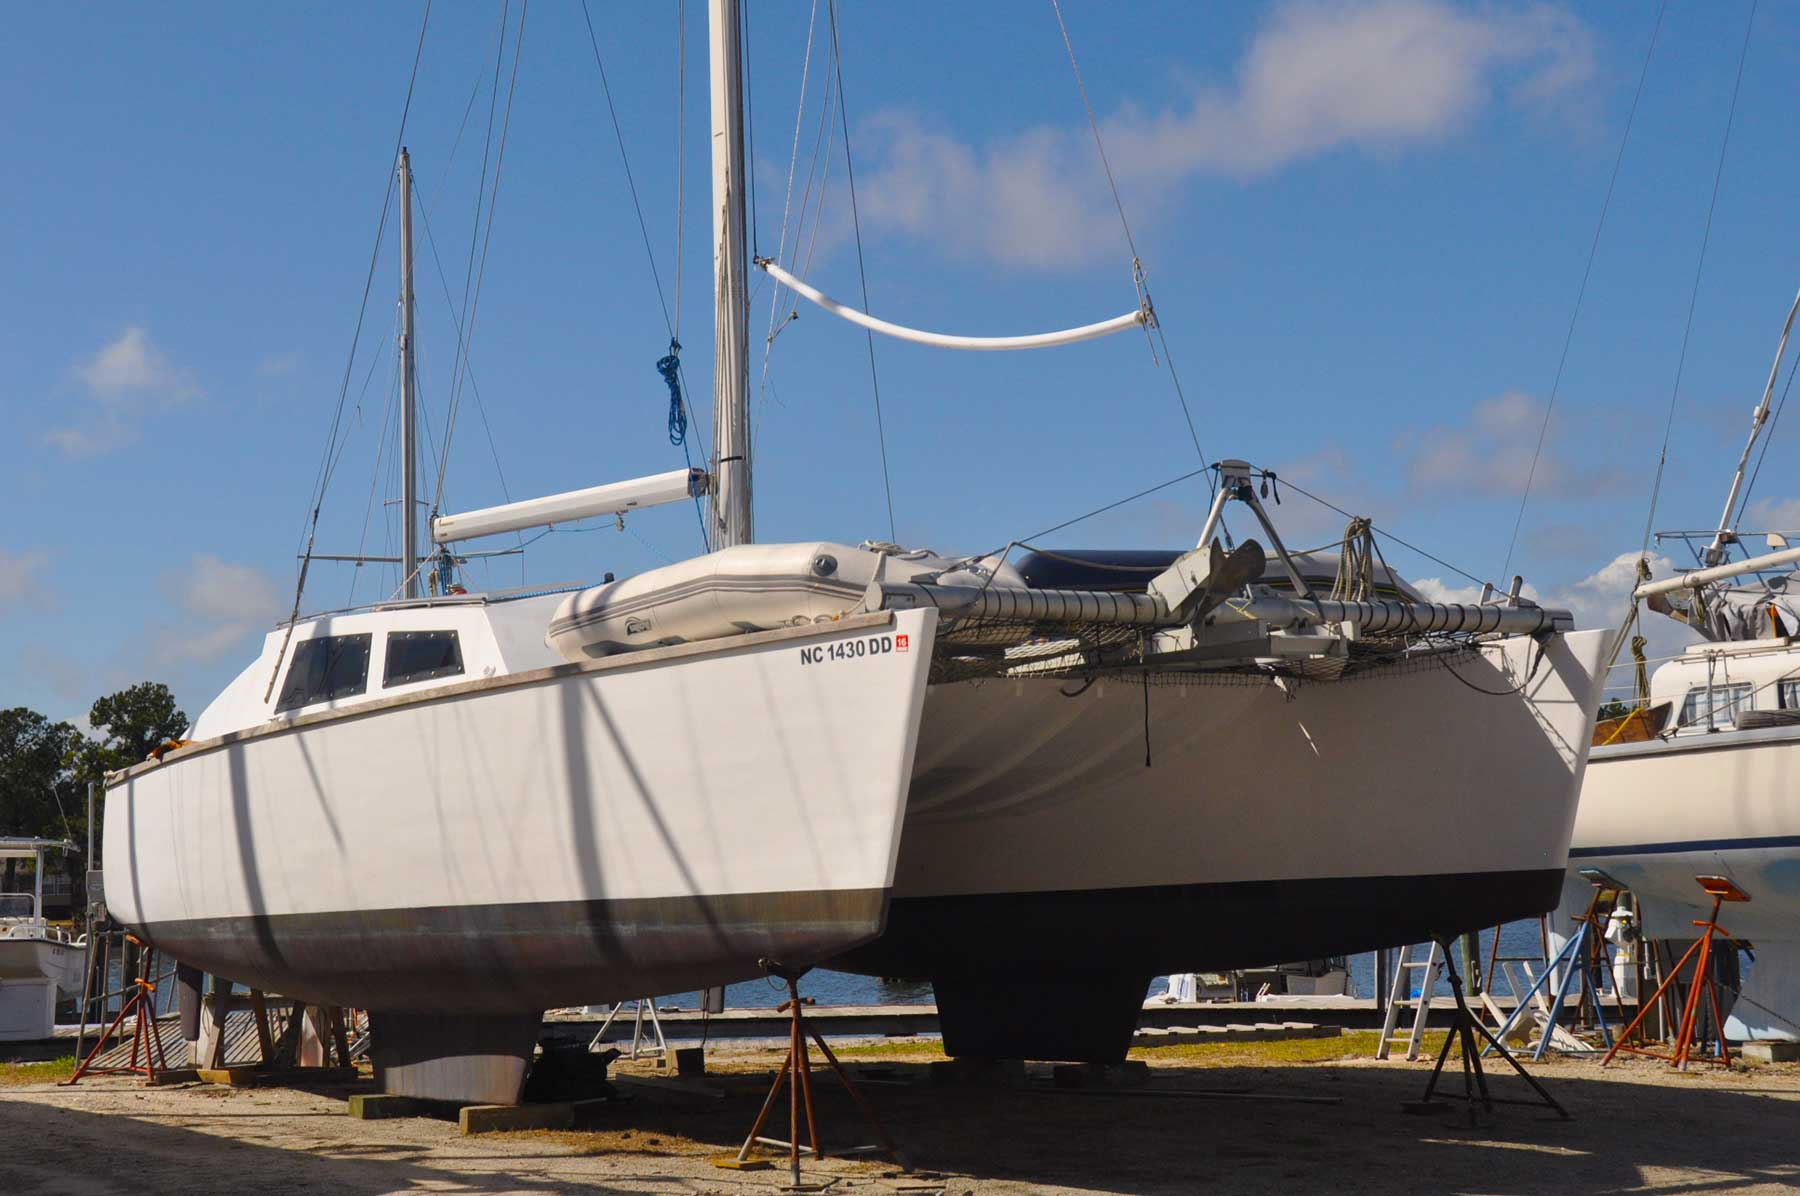 We haul catamarans up to 19 feet wide